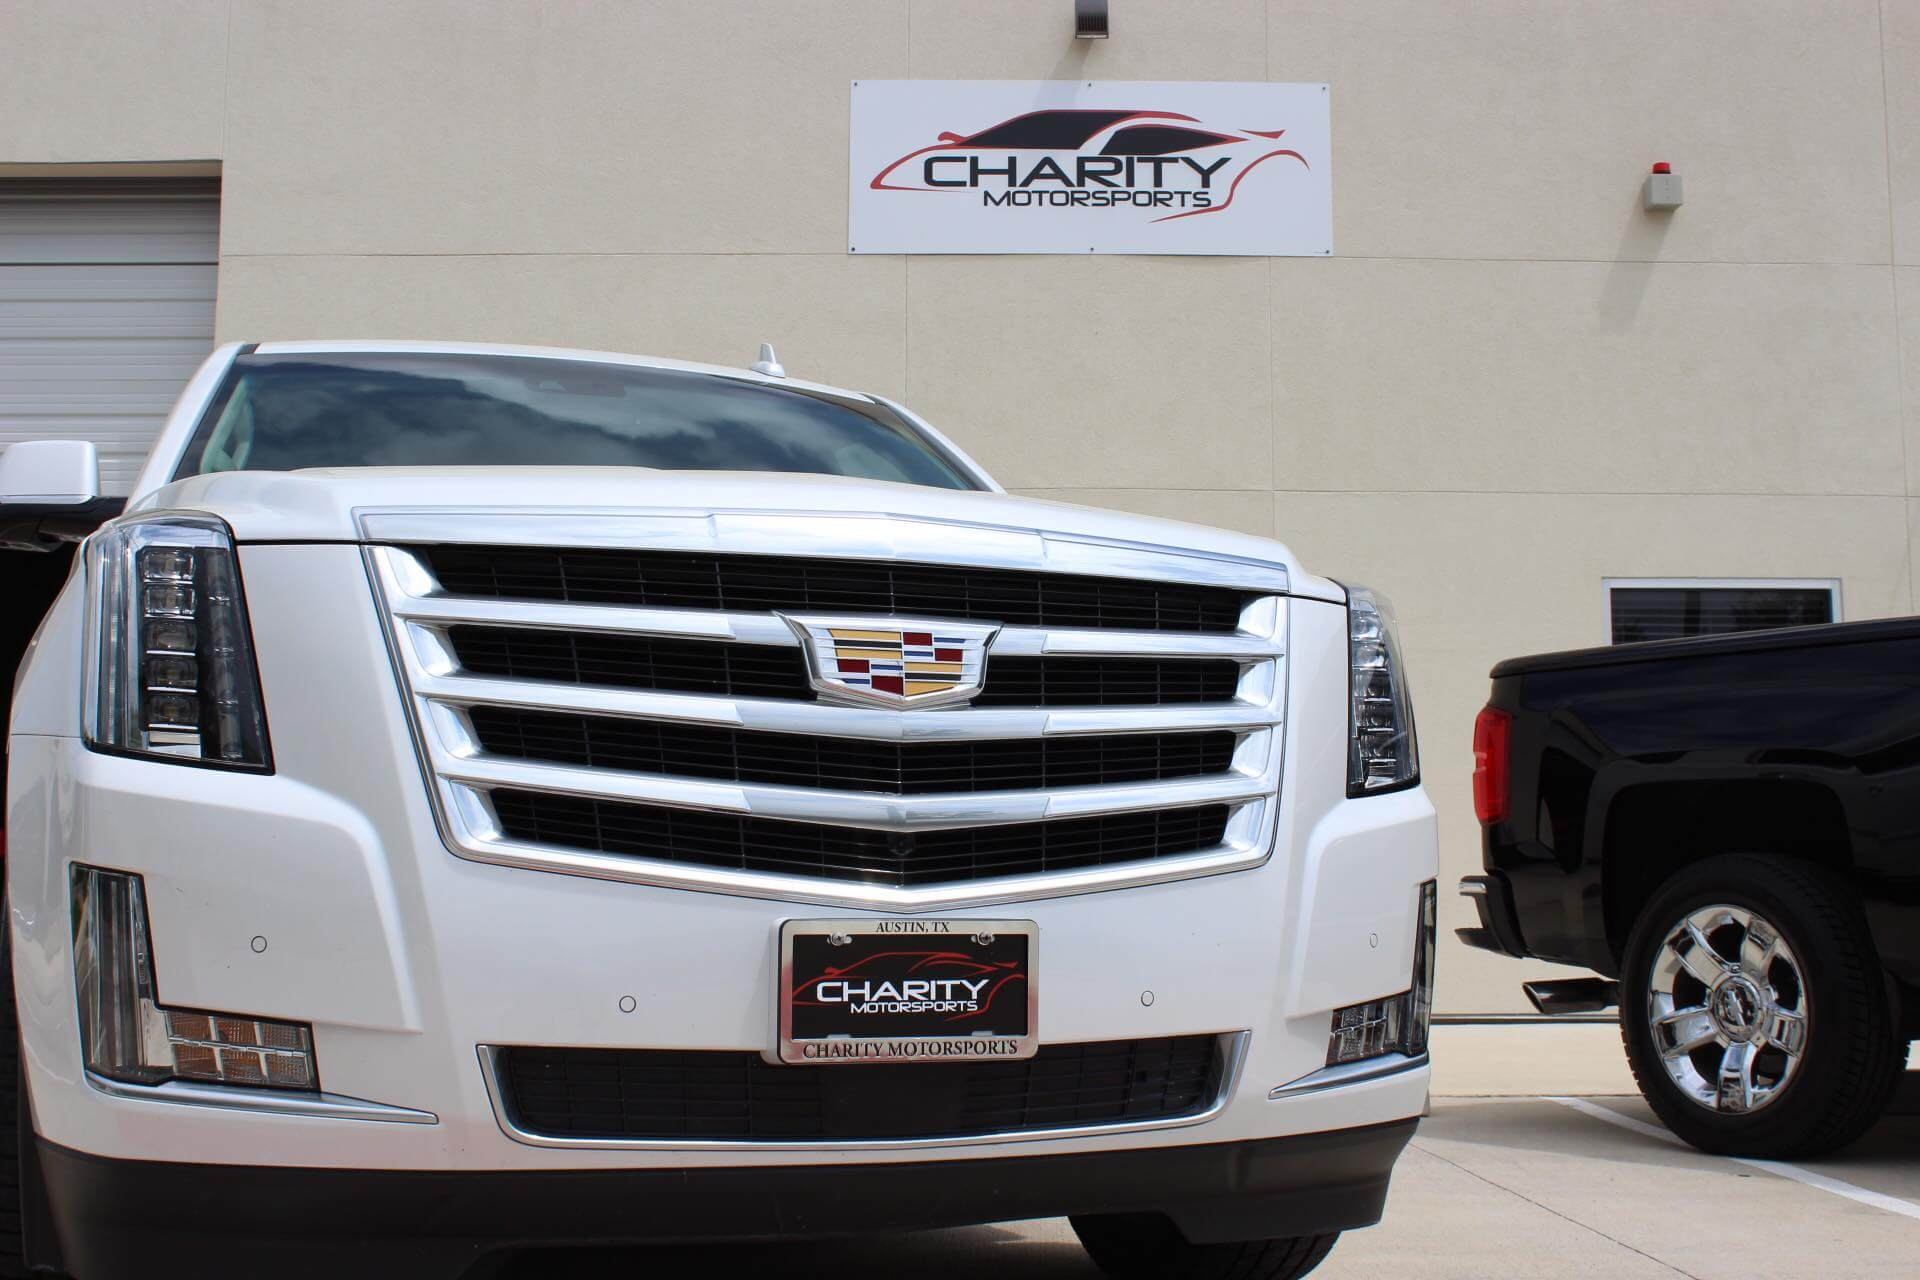 Luxury Used SUV Trade-In in Austin Texas